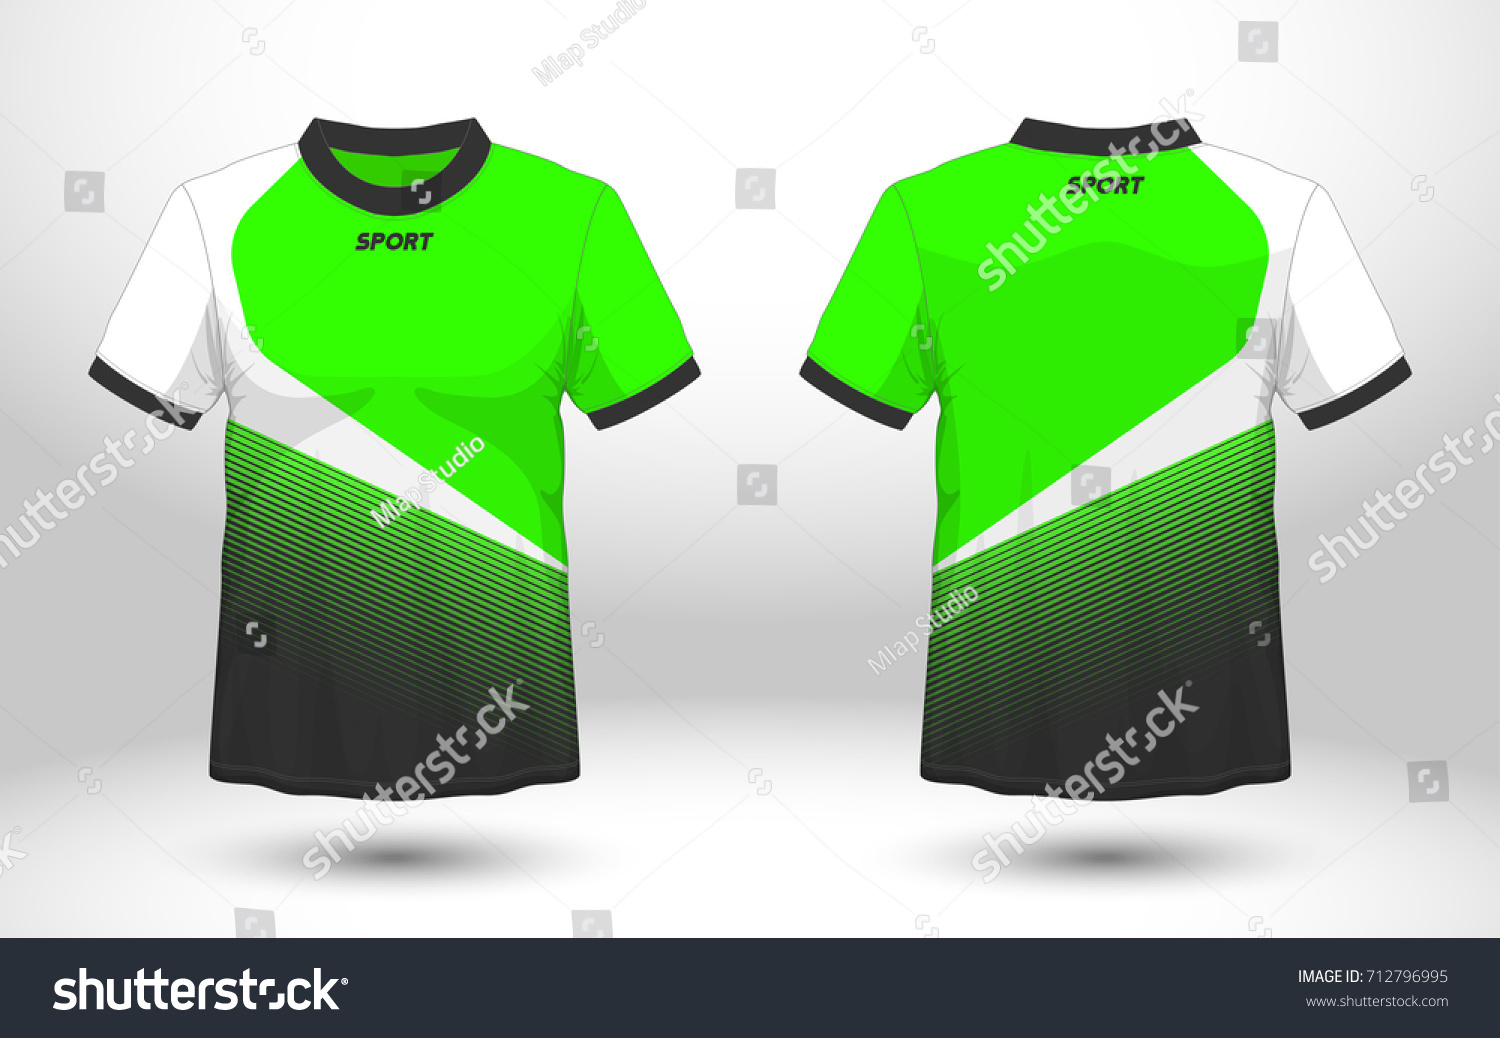 ad35c5913 Green and black layout football sport t-shirt design. Template front, back  view.